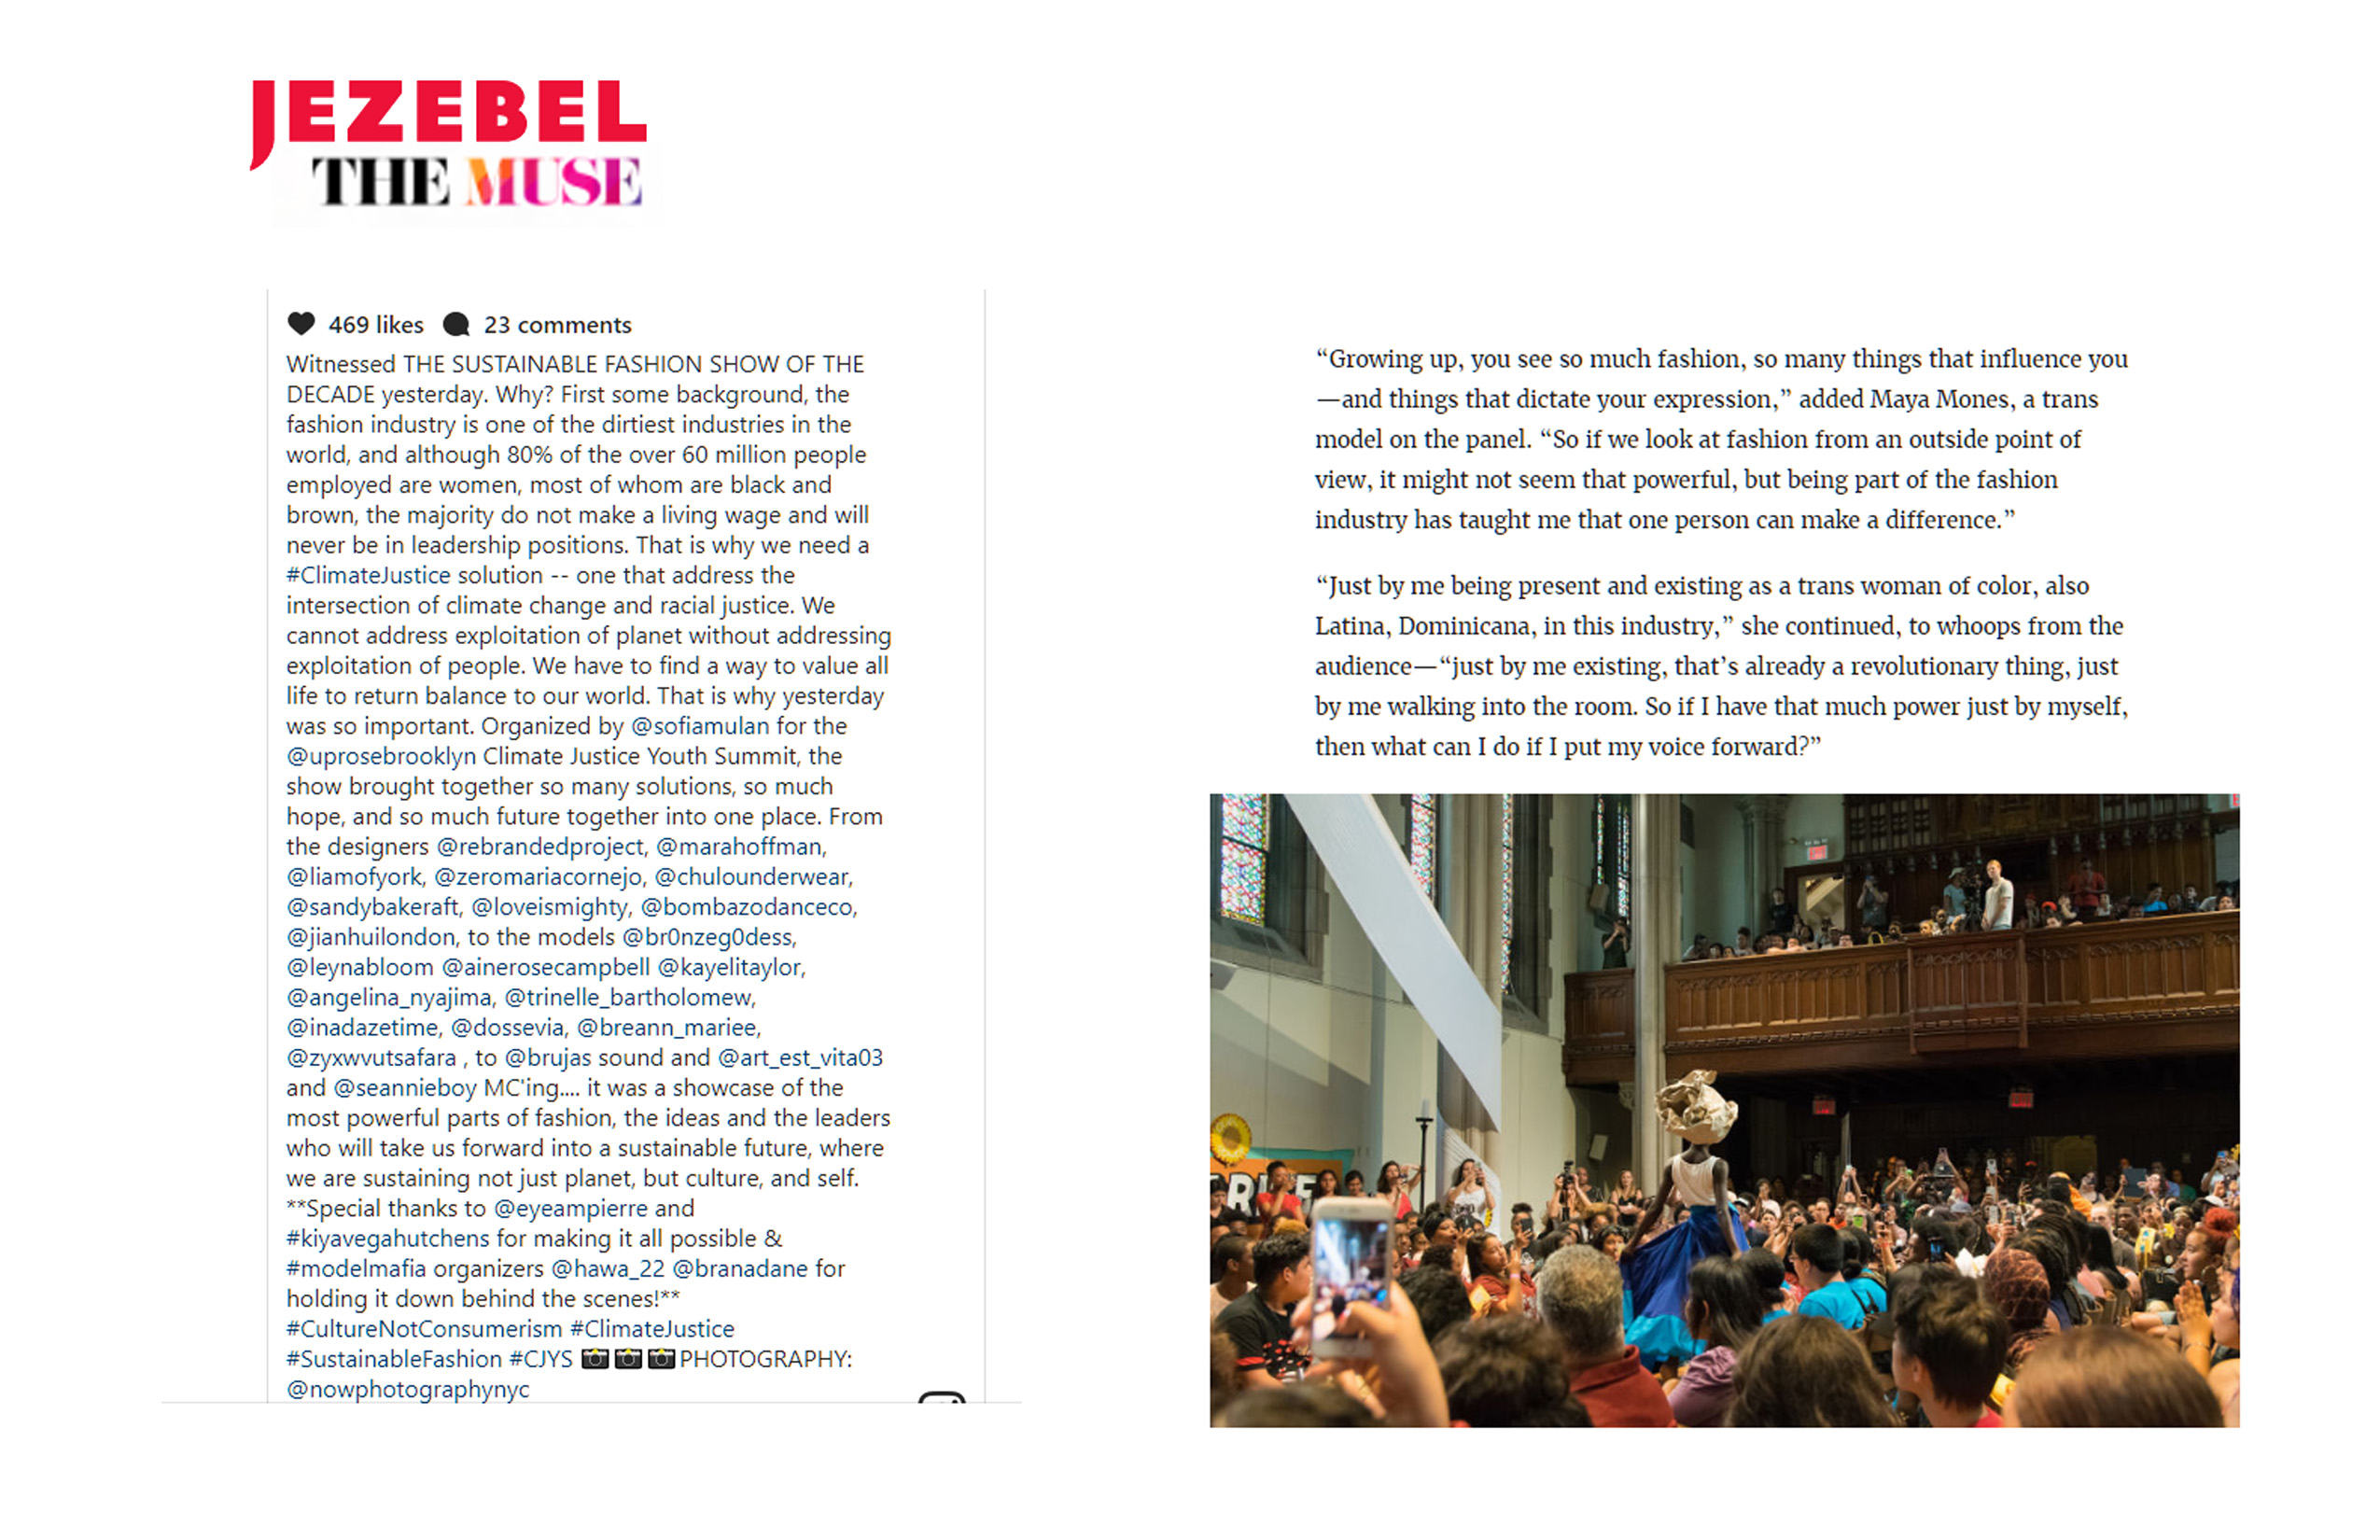 Jezebel The Muse Climate Justice Youth Summit Fashon Show article by E Shechet page 04